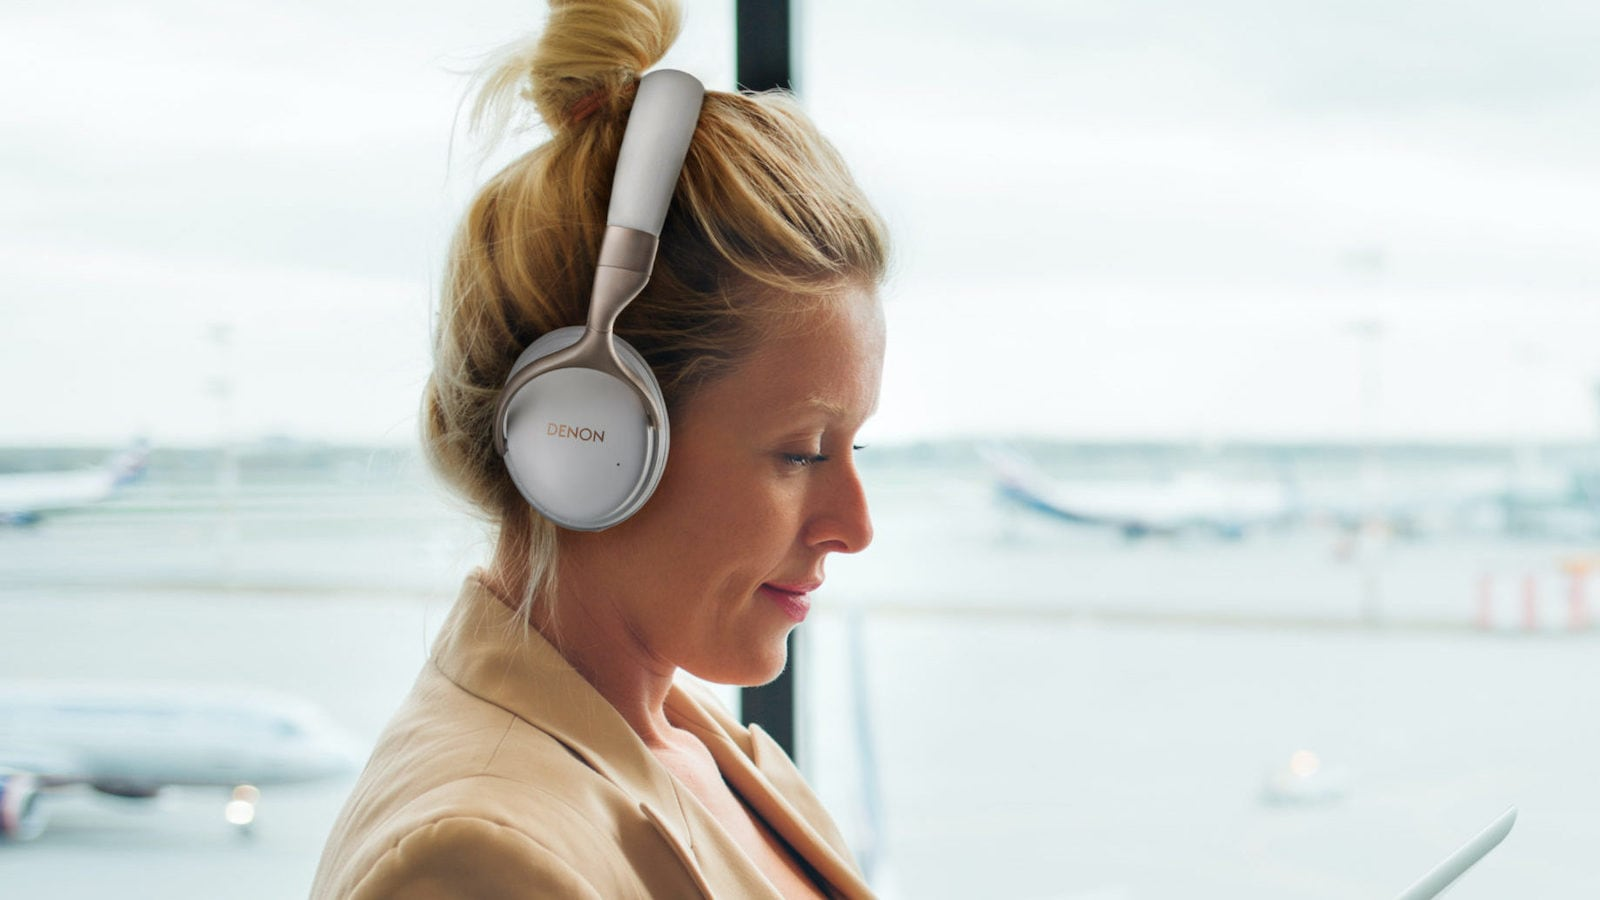 Denon AH-GC30 Noise-Canceling Headphones have FreeEdge drivers for great audio